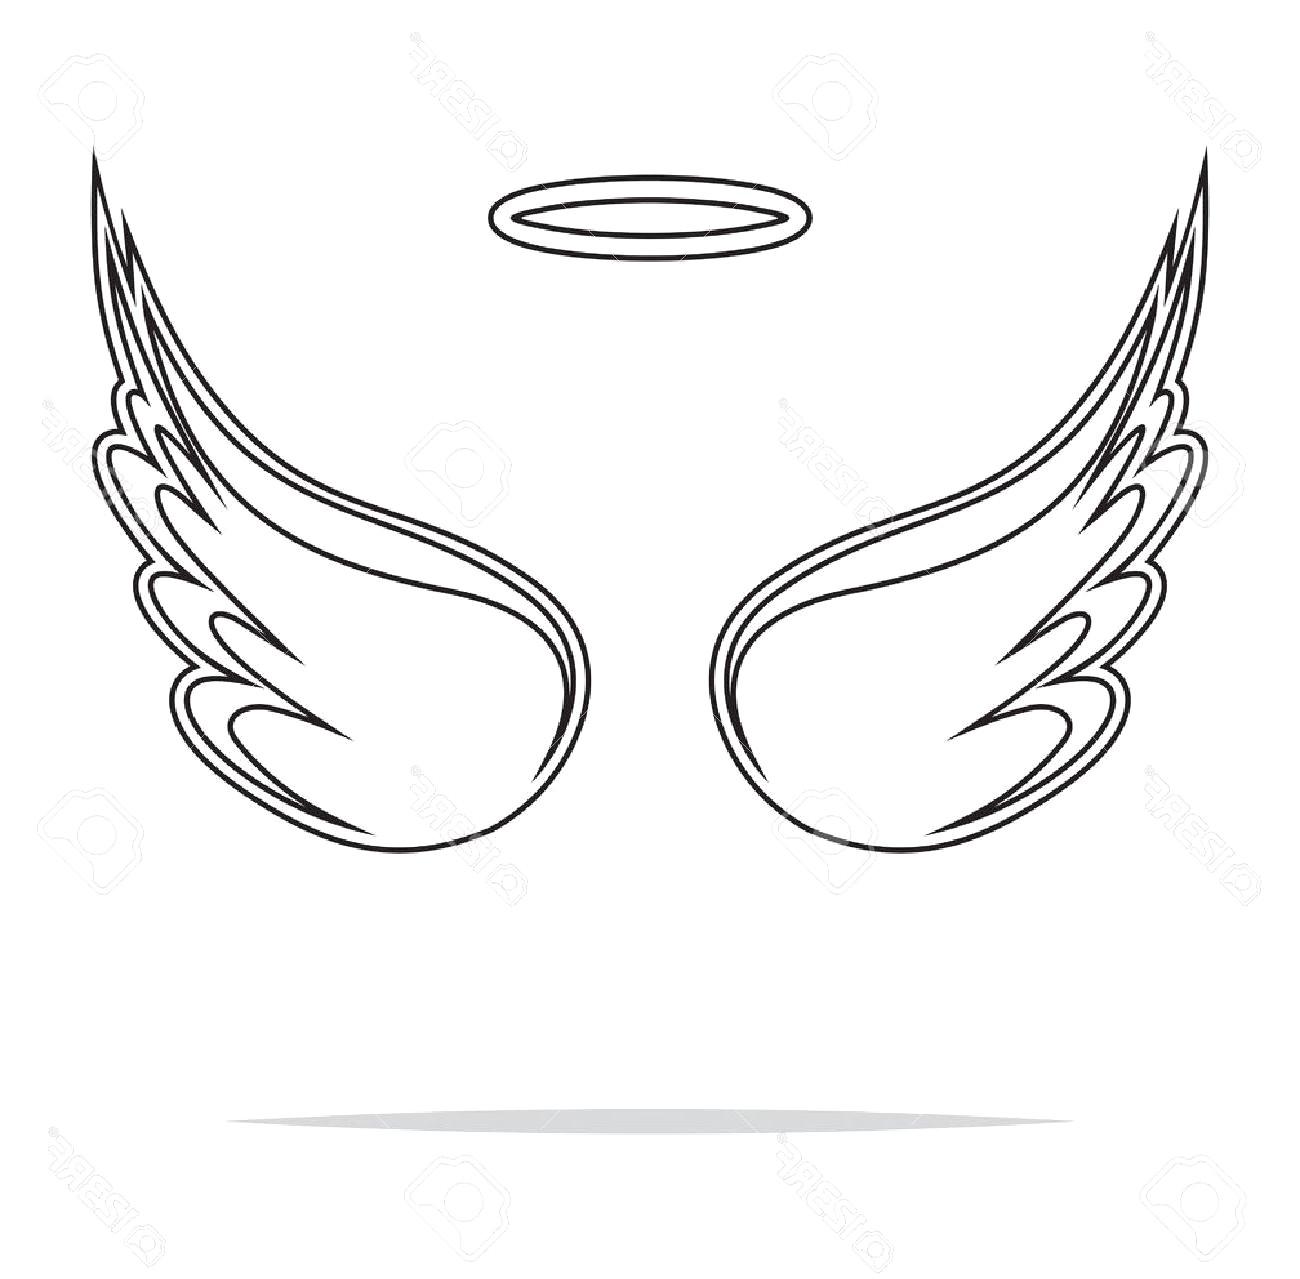 Wings clipart black and white » Clipart Station.